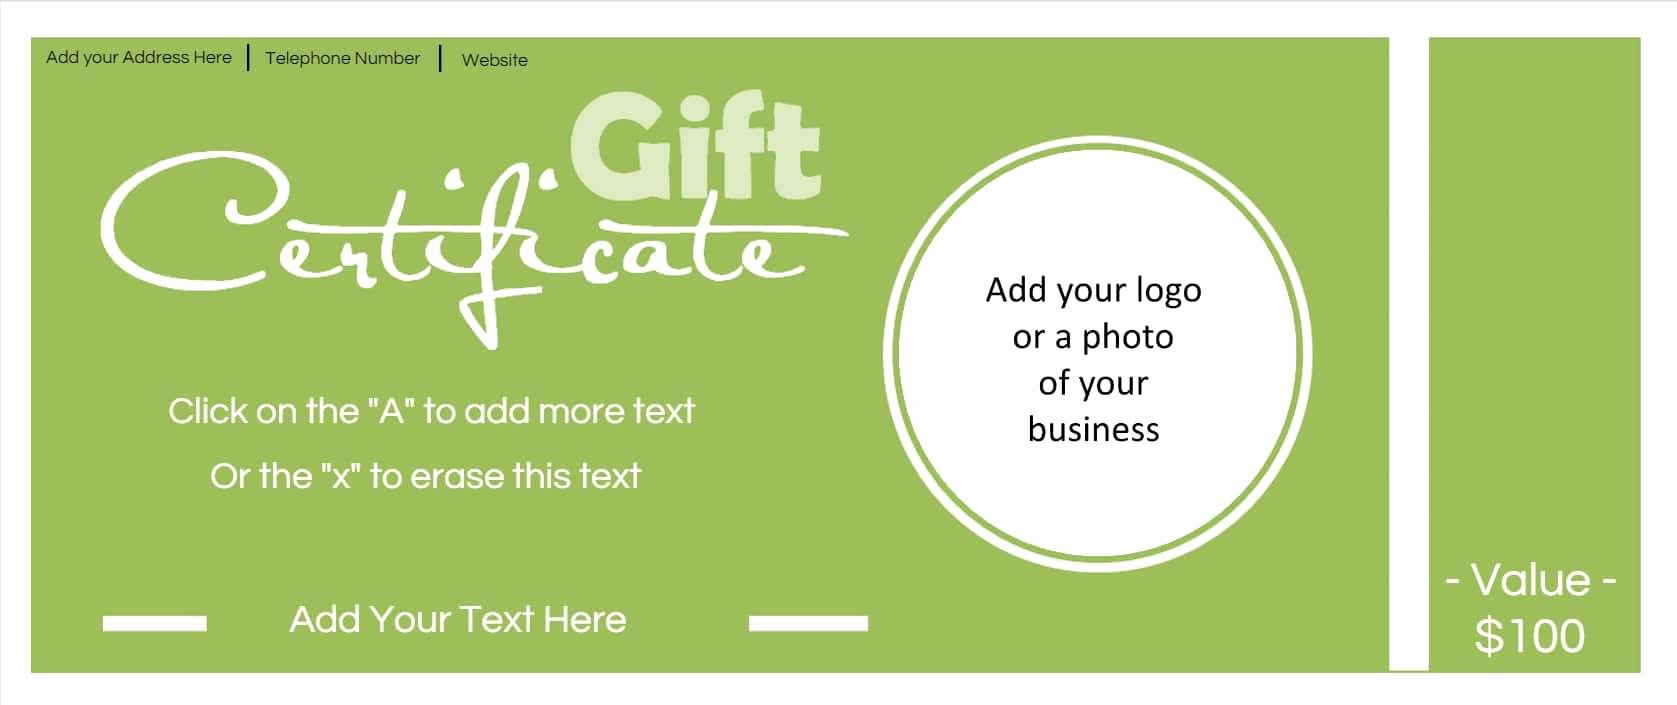 Free Gift Card Templates Beautiful Gift Certificate Template with Logo